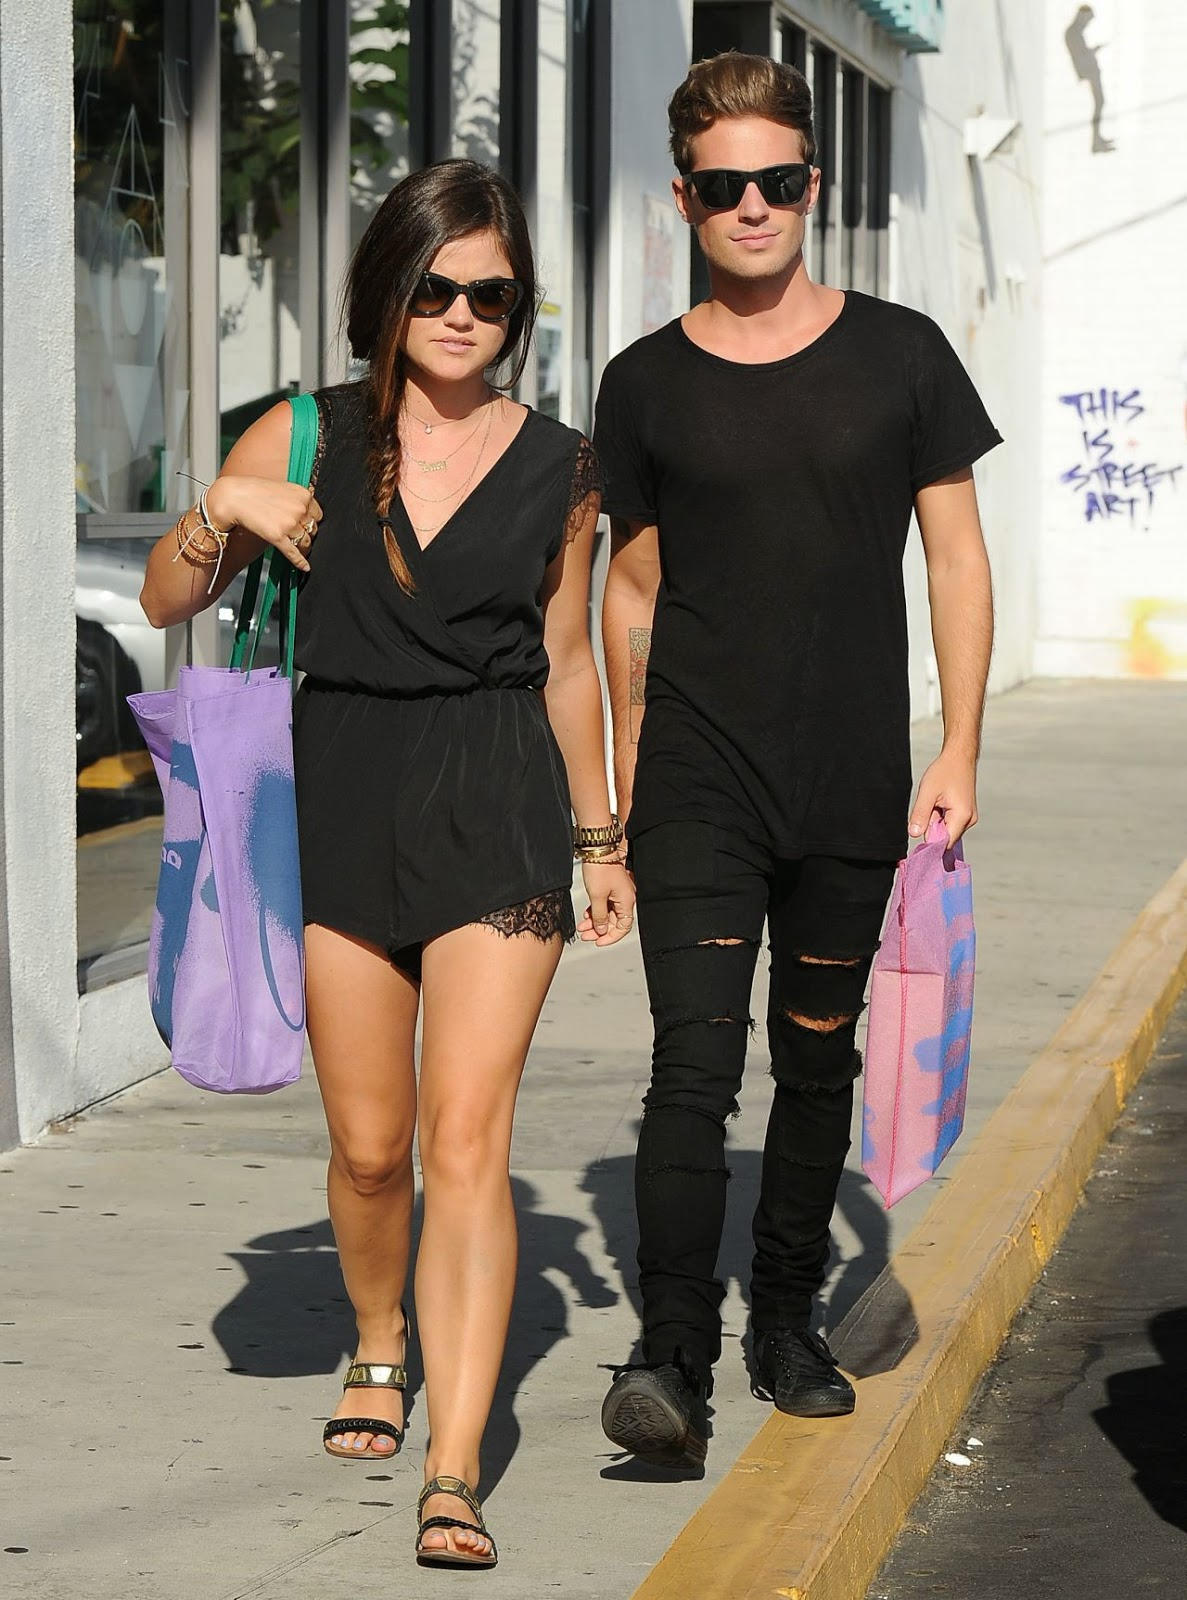 Lucy Hale shops in a lace accented black romper with her boyfriend in Beverly Hills